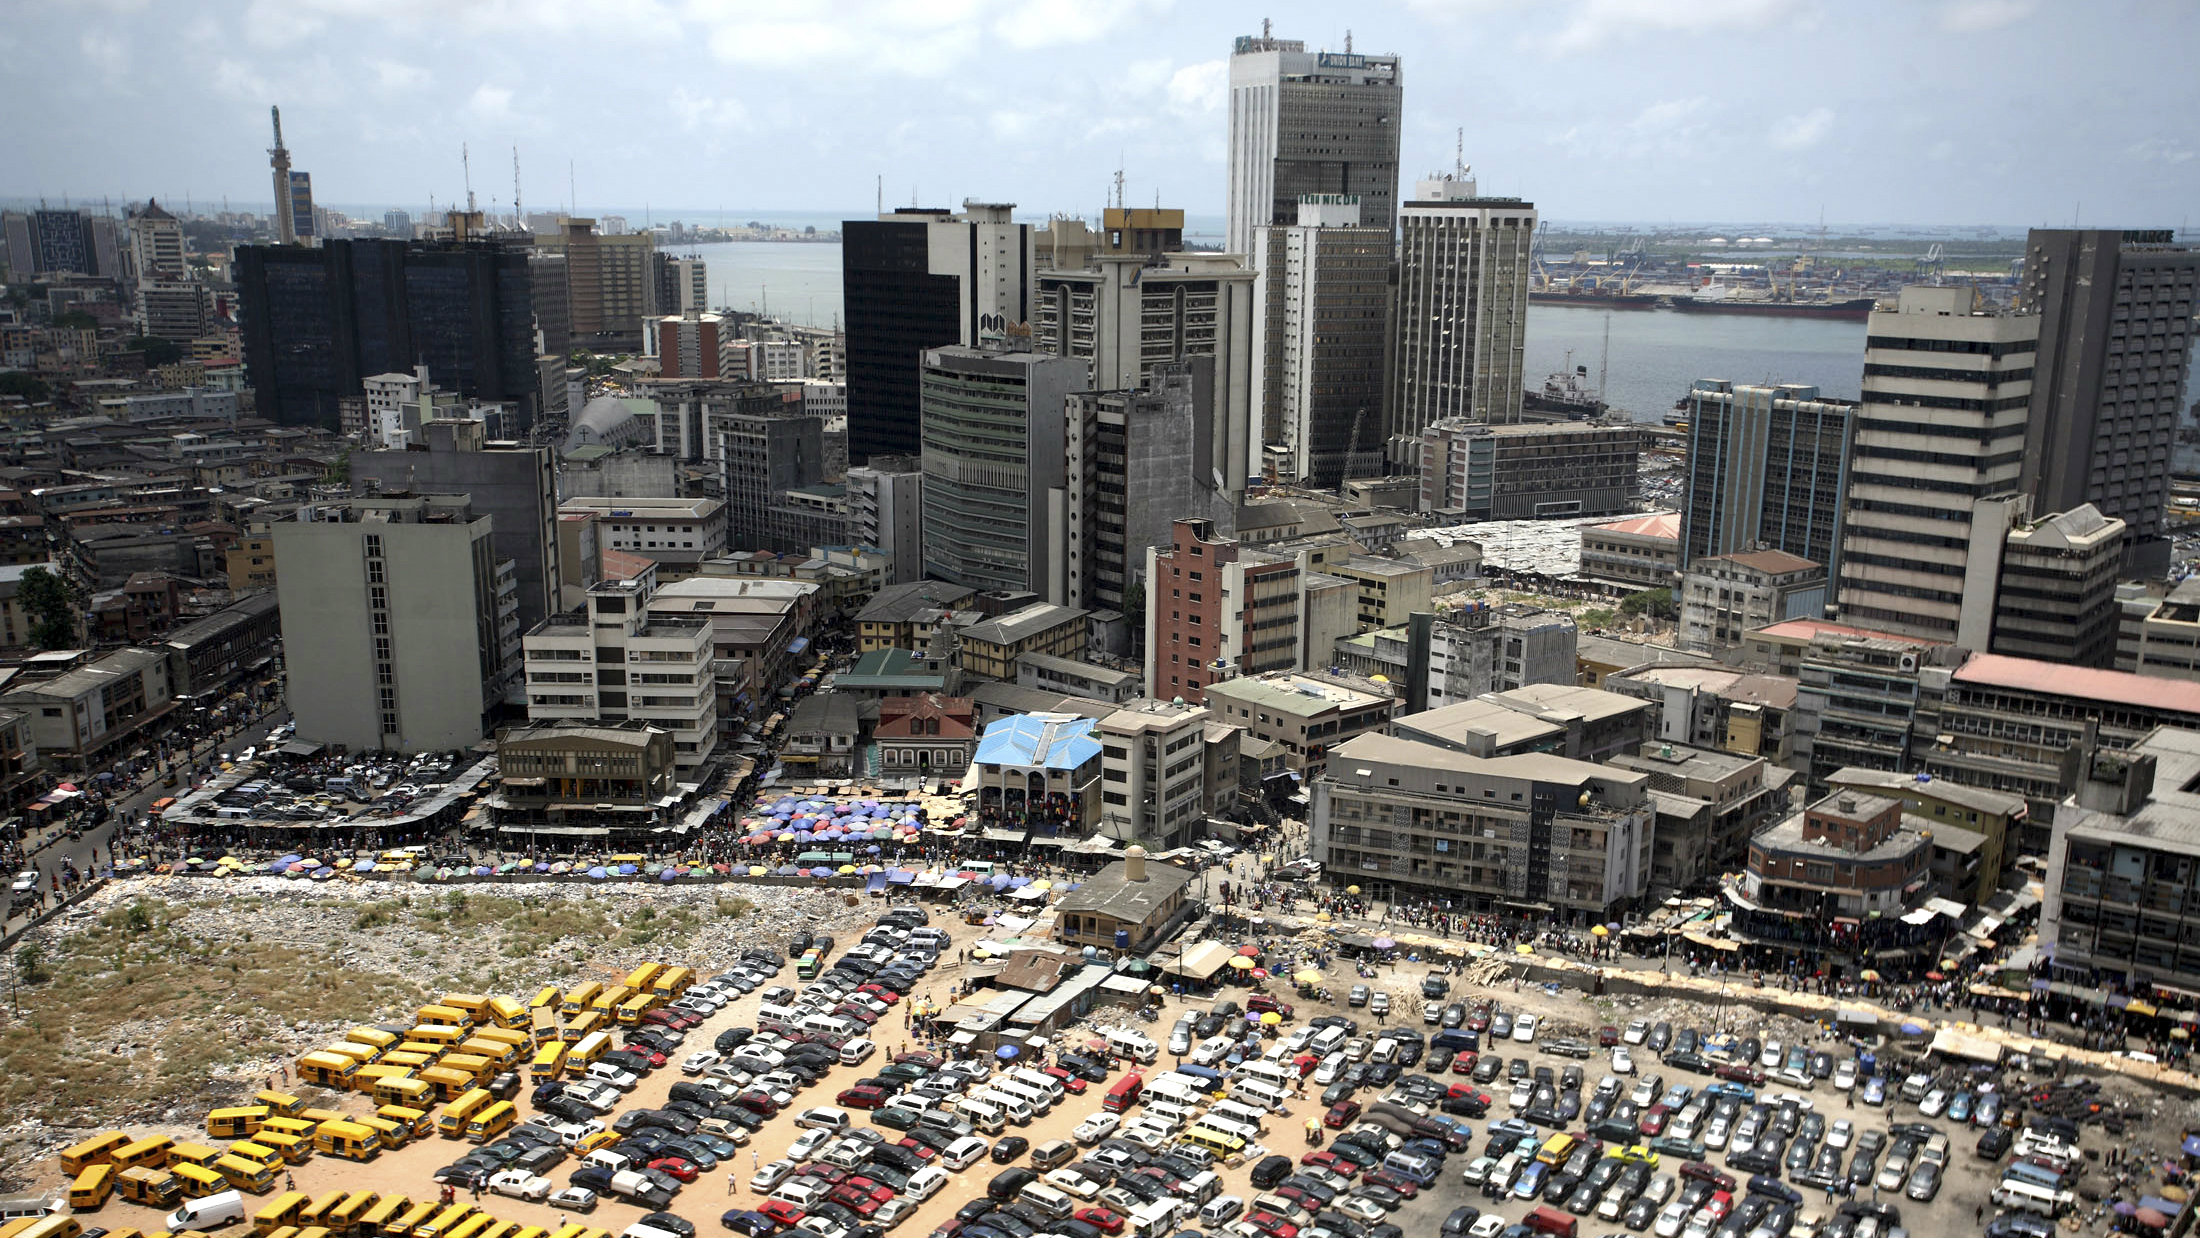 An aerial view shows the central business district in Nigeria's commercial capital of Lagos, April 7, 2009.